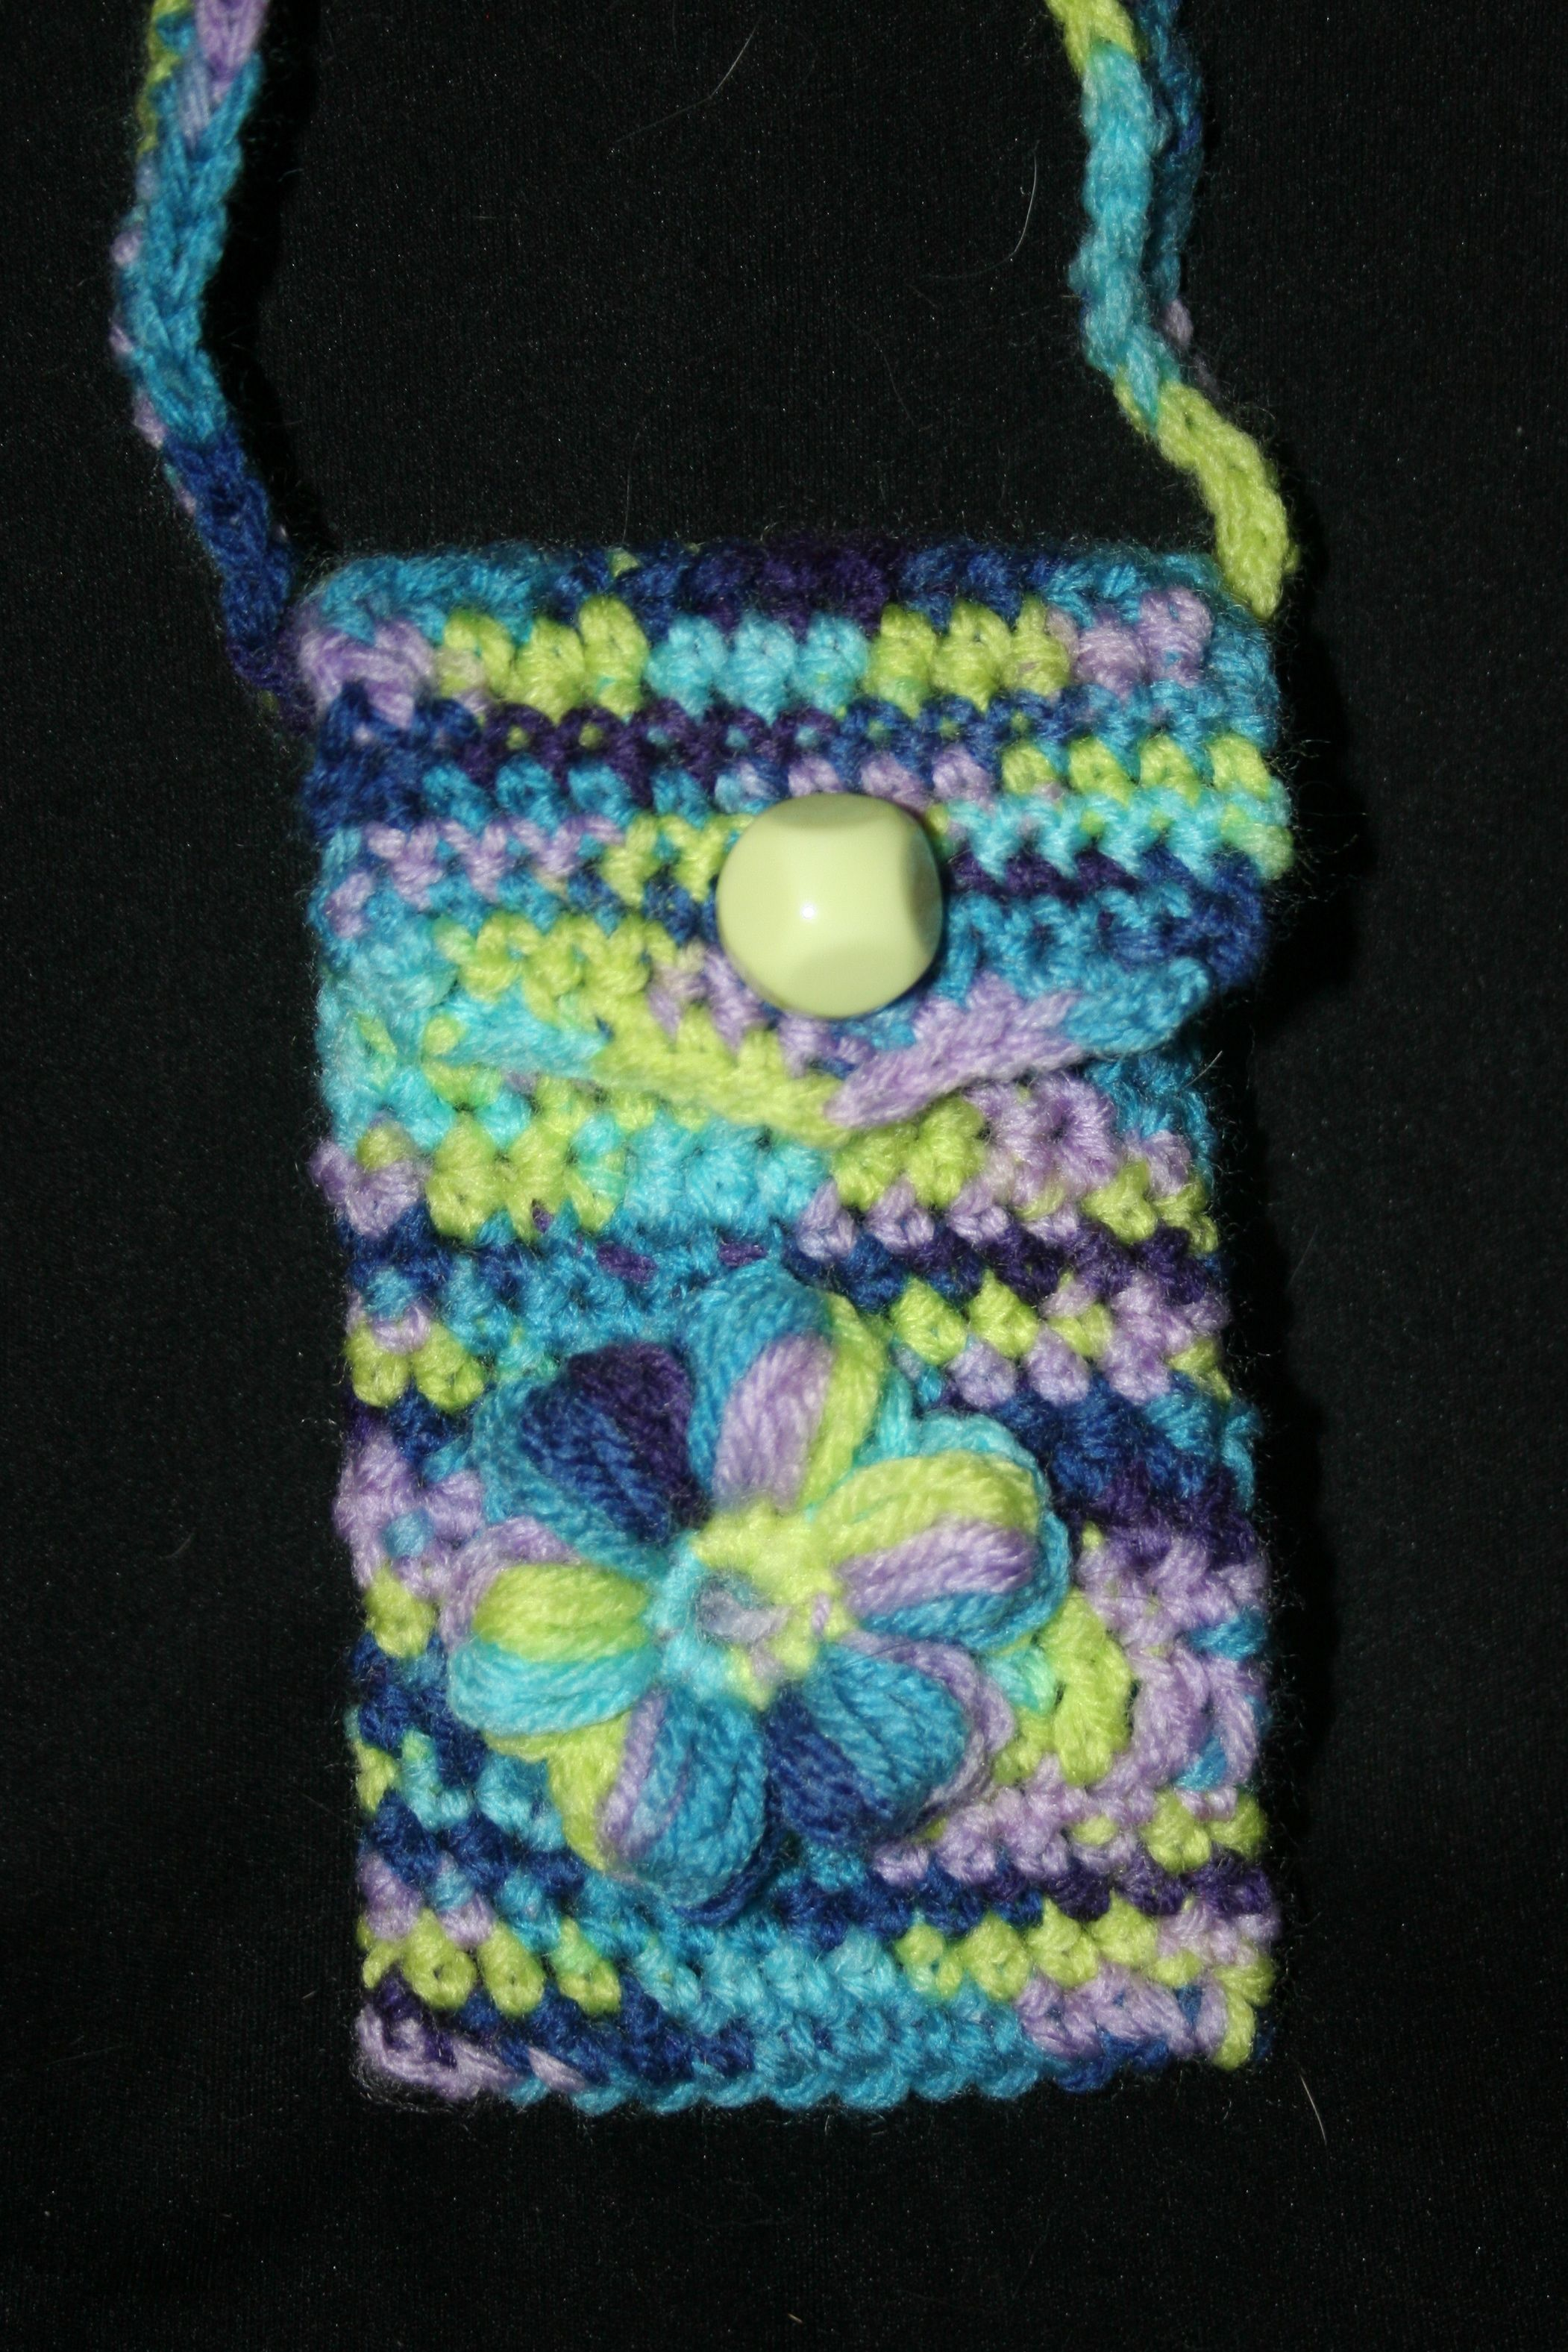 Cute little crochet bag to carry your cell phone    Yarn: Craft Smart Giverny